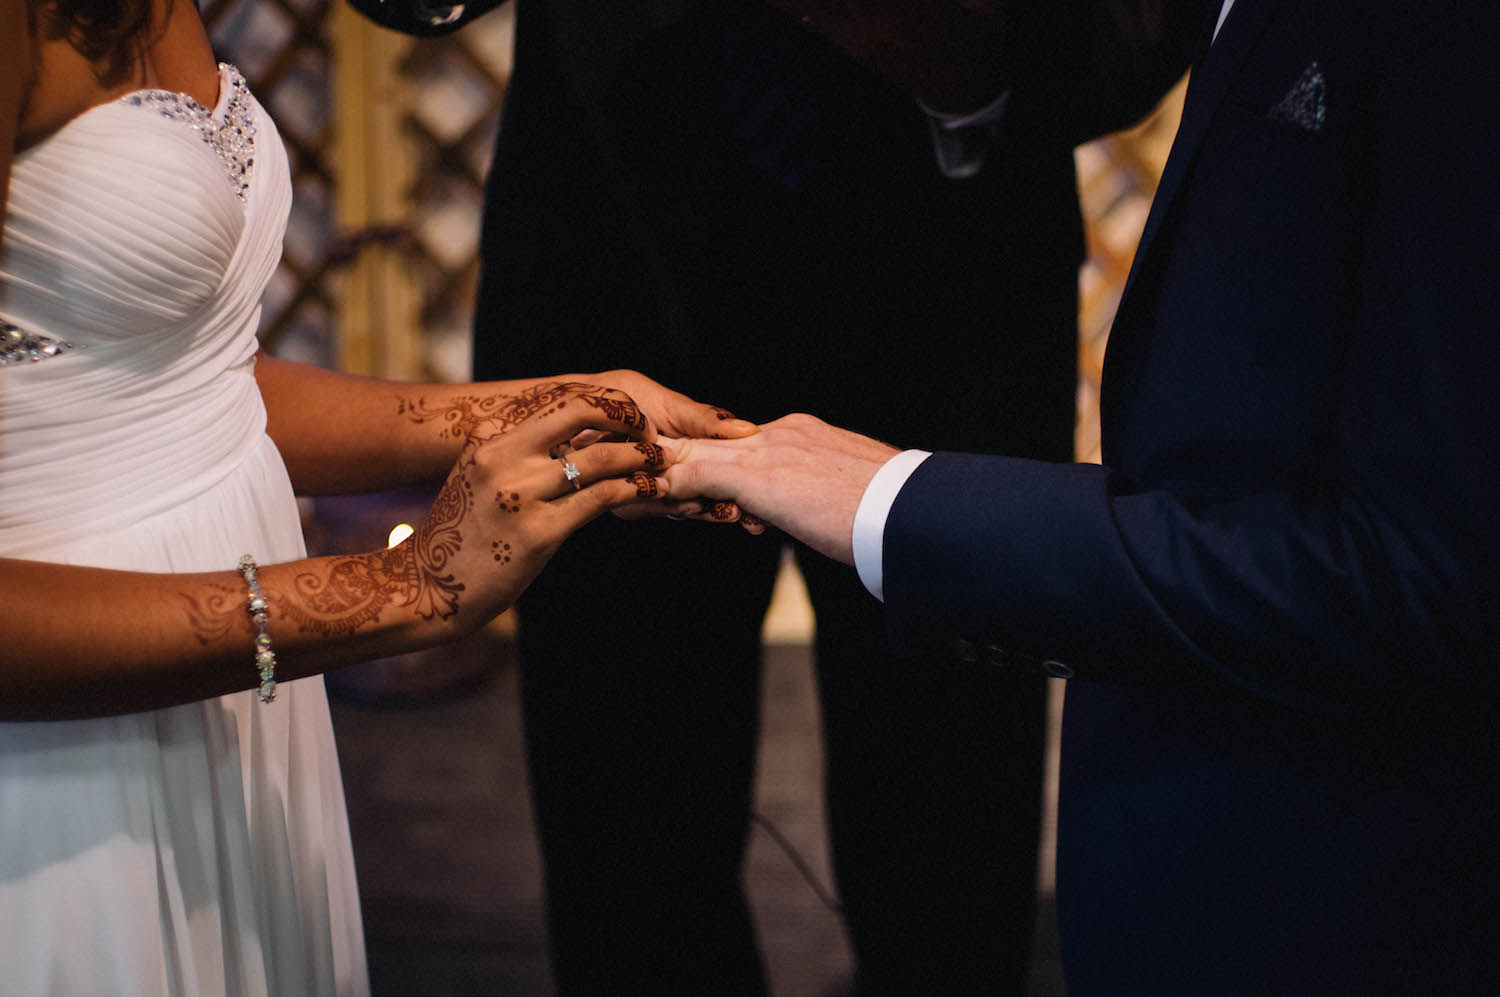 A bride with henna exchanging rings with her new husband at St Matthew's Anglican Church, Subiaco.